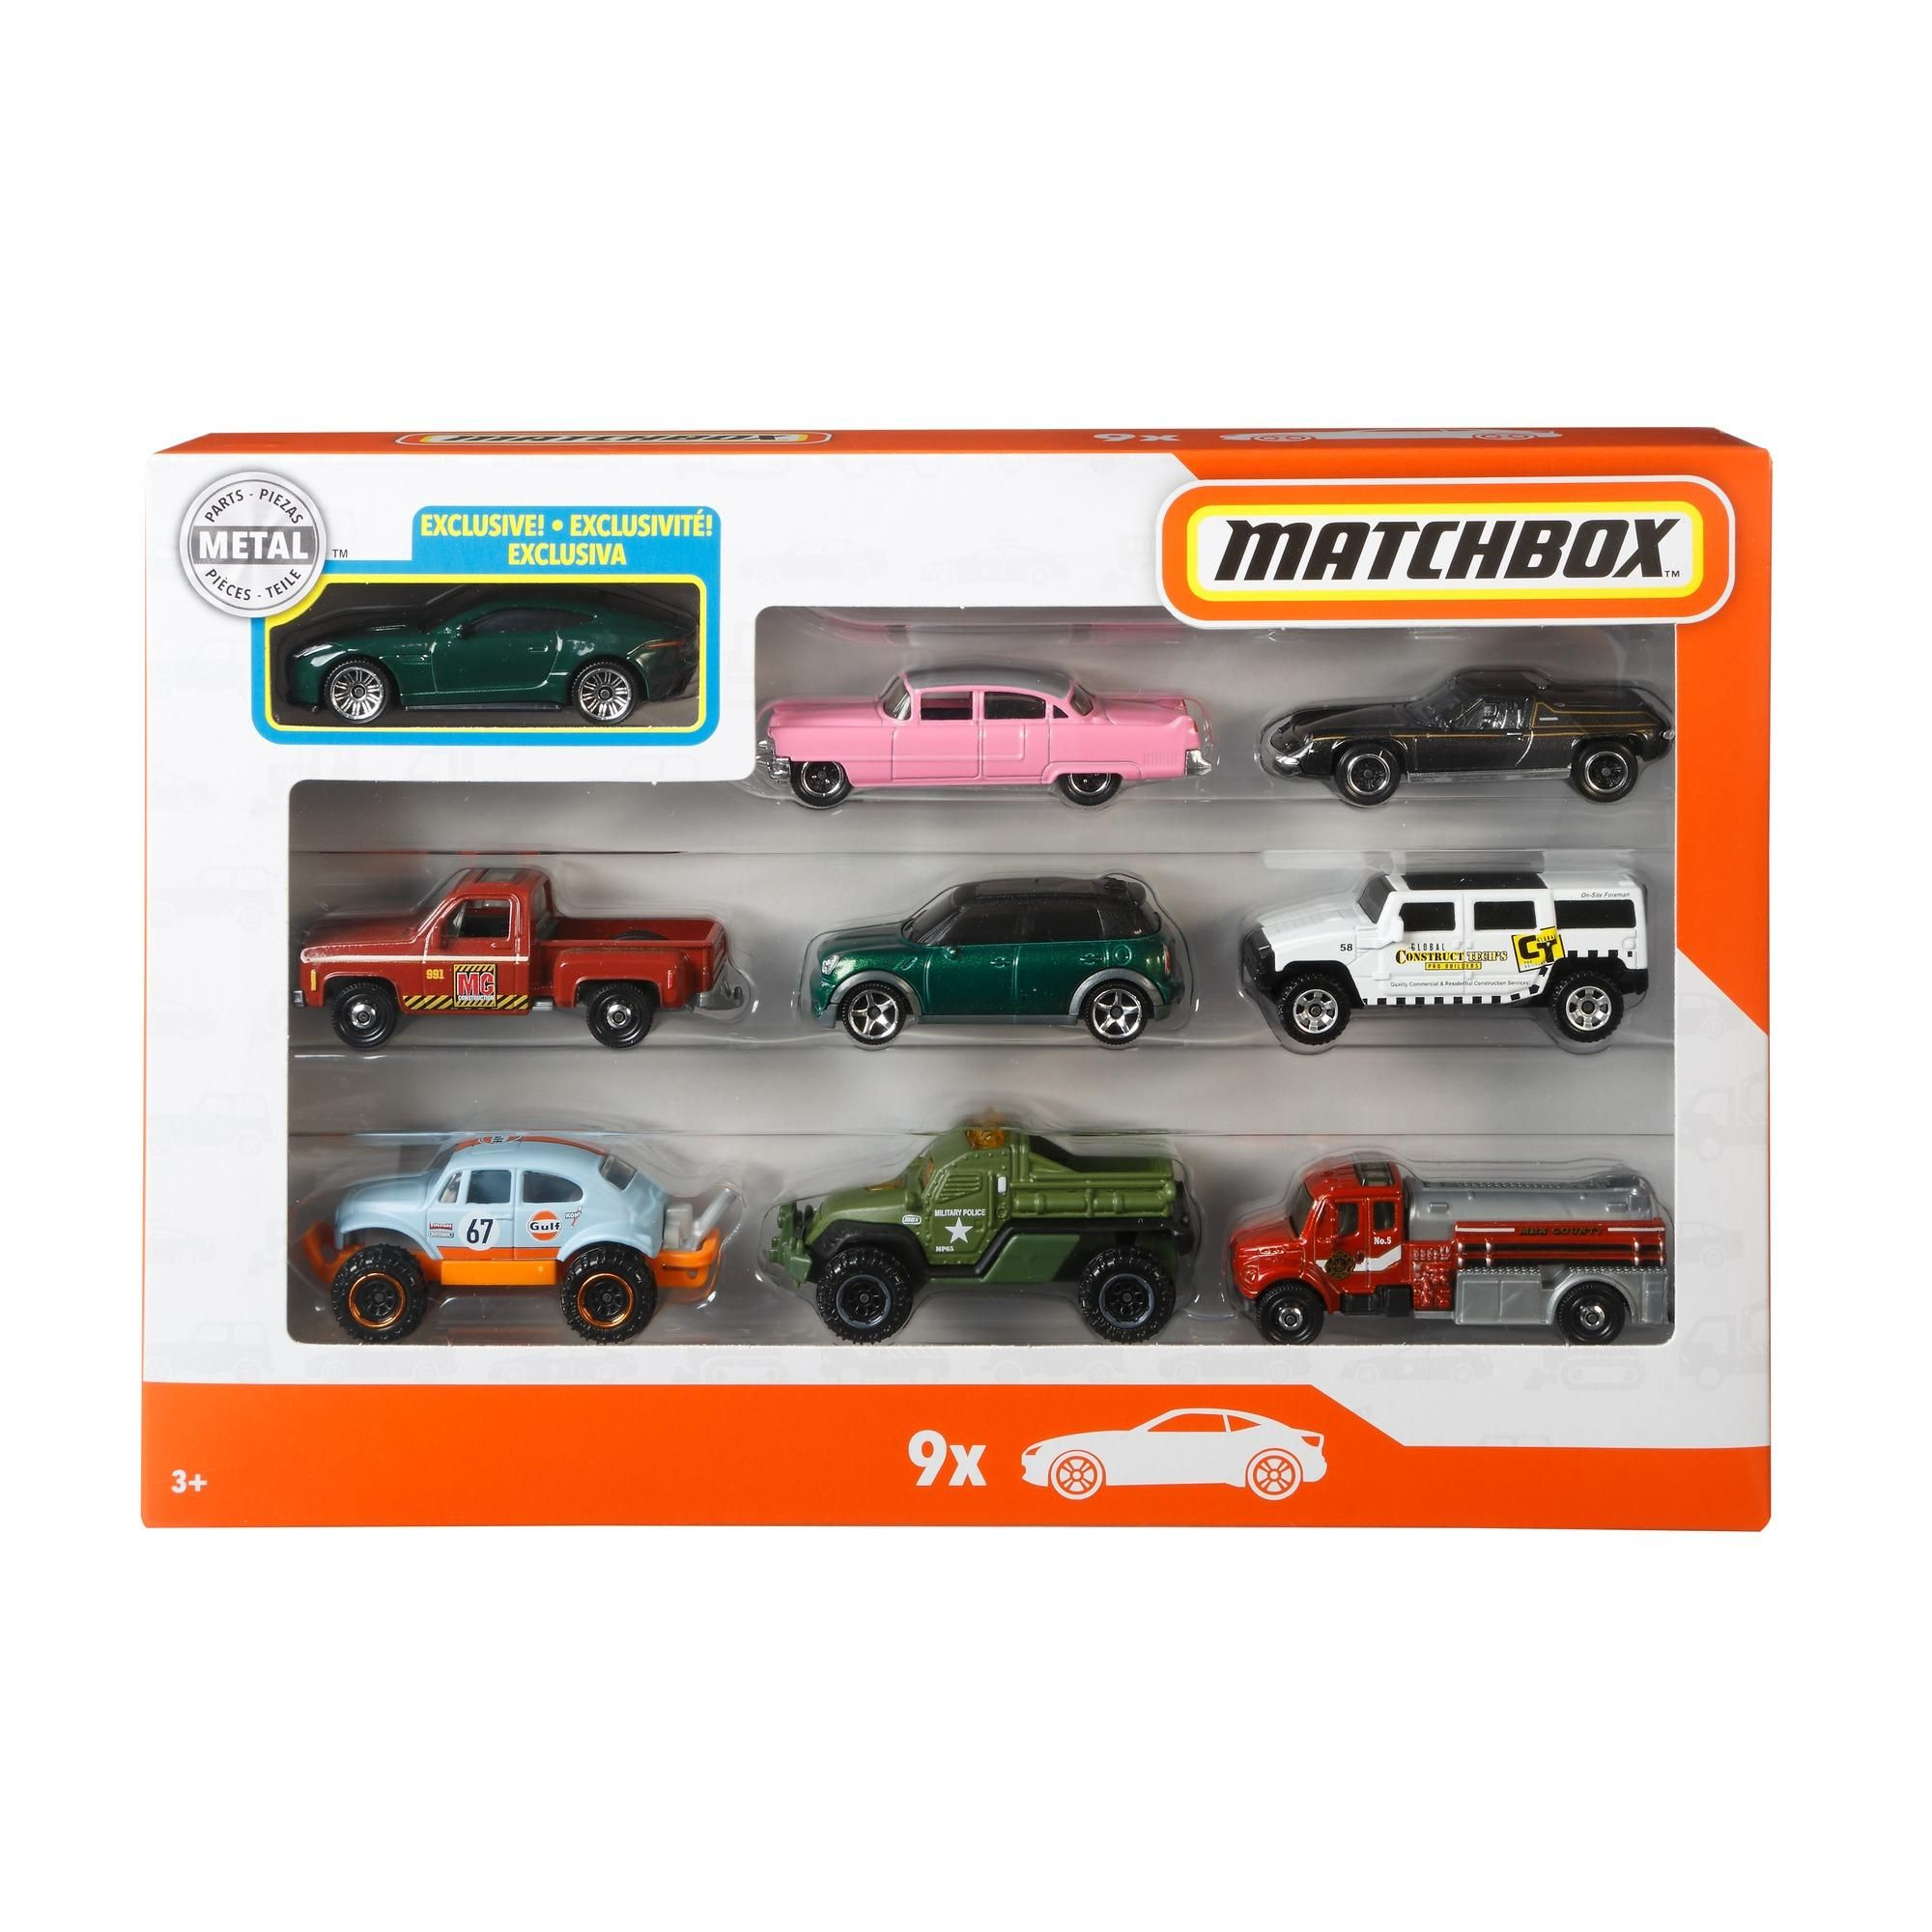 Matchbox 9 Car Collector Gift Pack Styles May Vary Car Play Vehicles Walmart Com In 2021 Matchbox Play Vehicles Collector Cars [ 2000 x 2000 Pixel ]